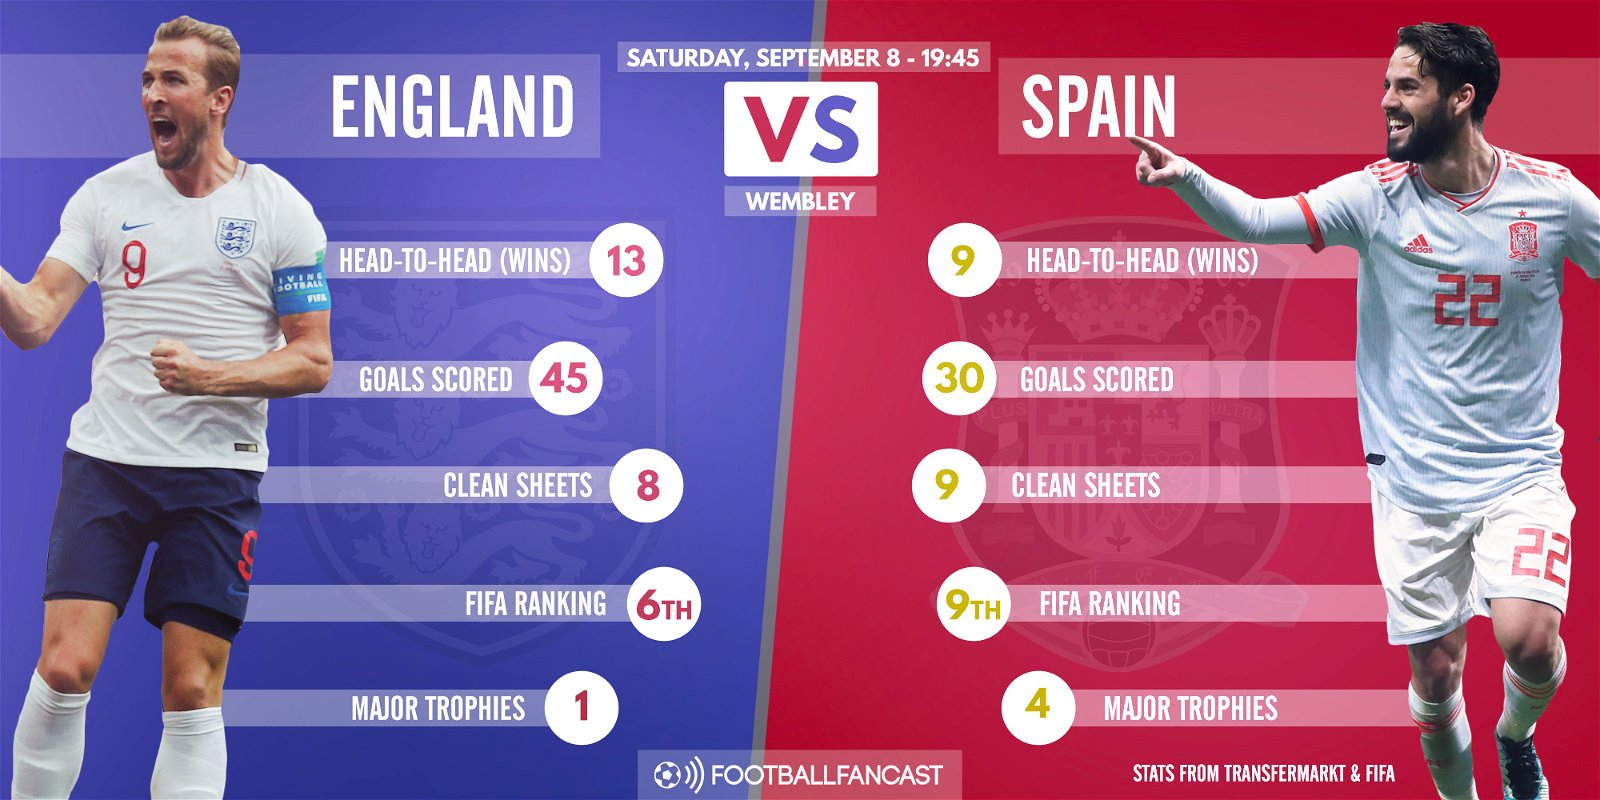 spain vs england - photo #4